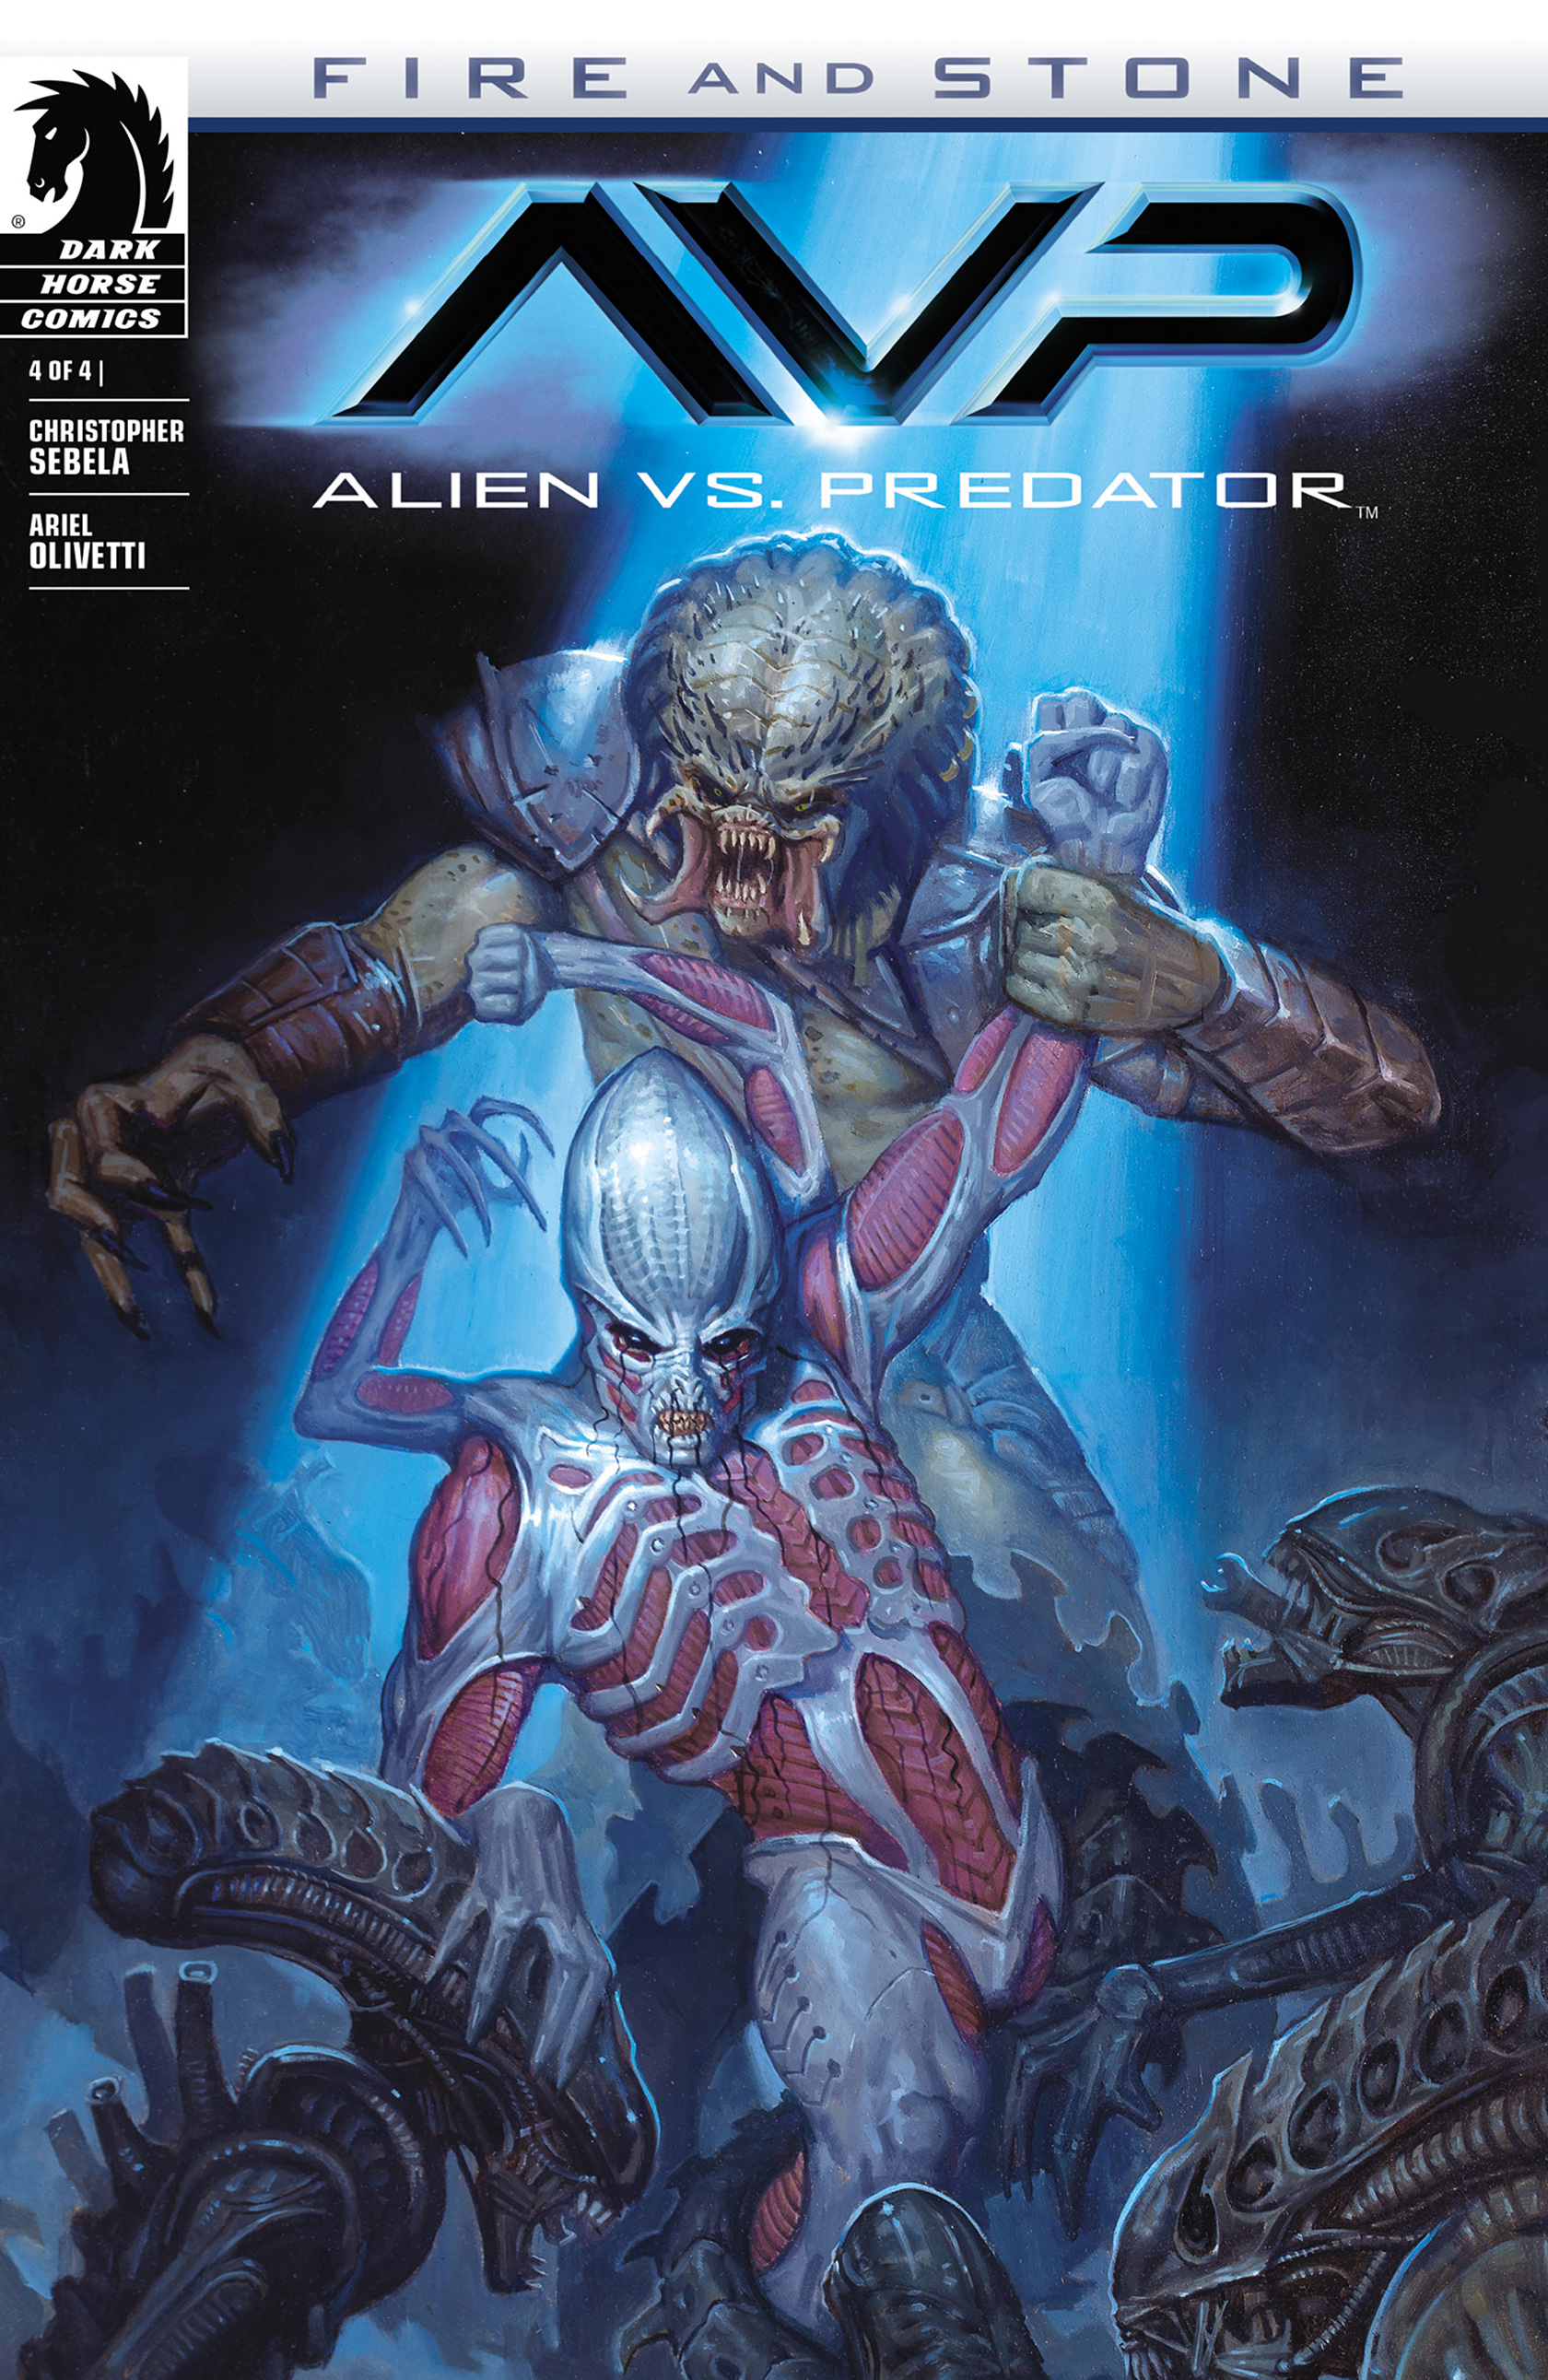 ALIEN VS. PREDATOR: FIRE & STONE #4